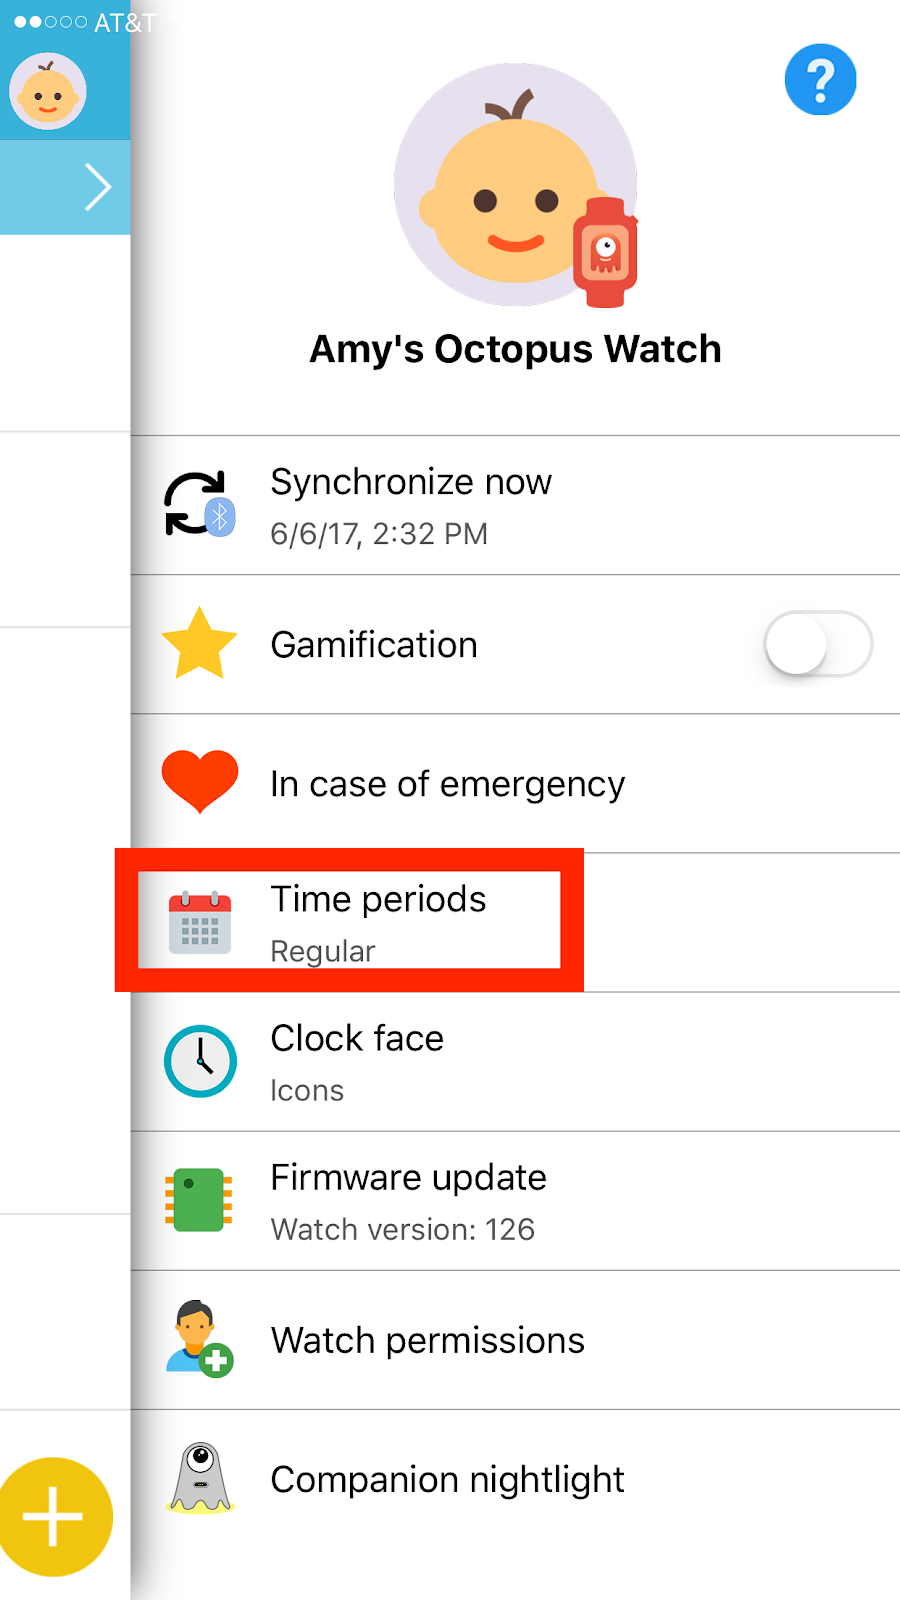 Octopus Watch App: time periods